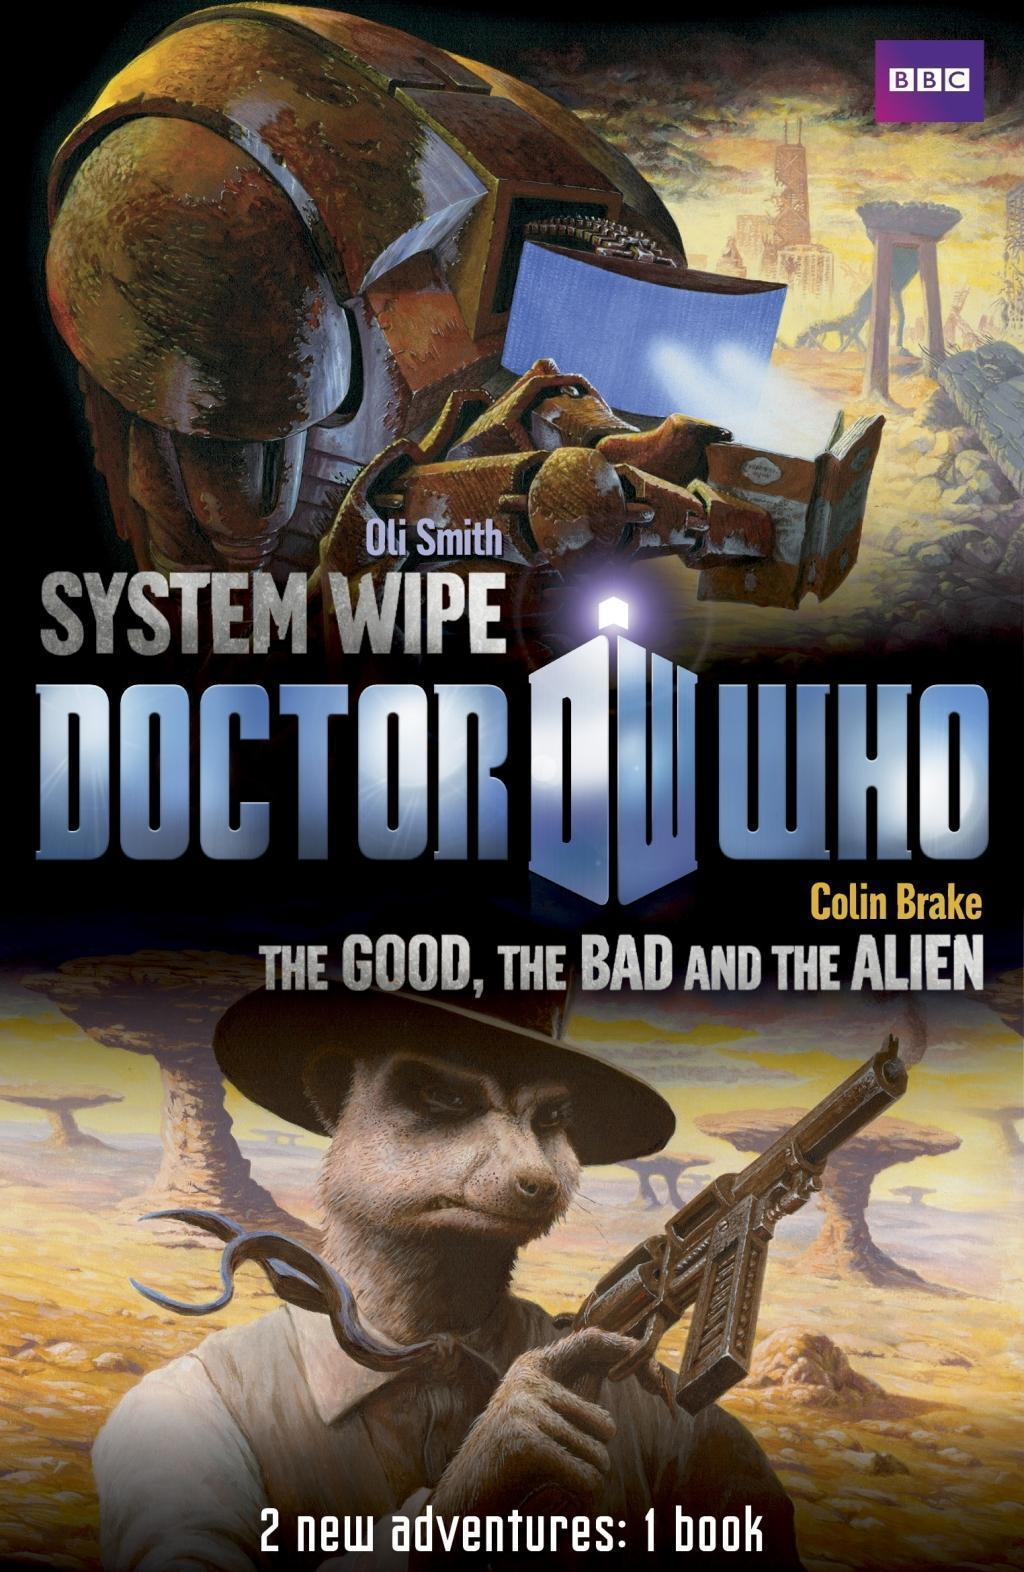 Book 2 - Doctor Who: The Good, the Bad and the Alien/System Wipe